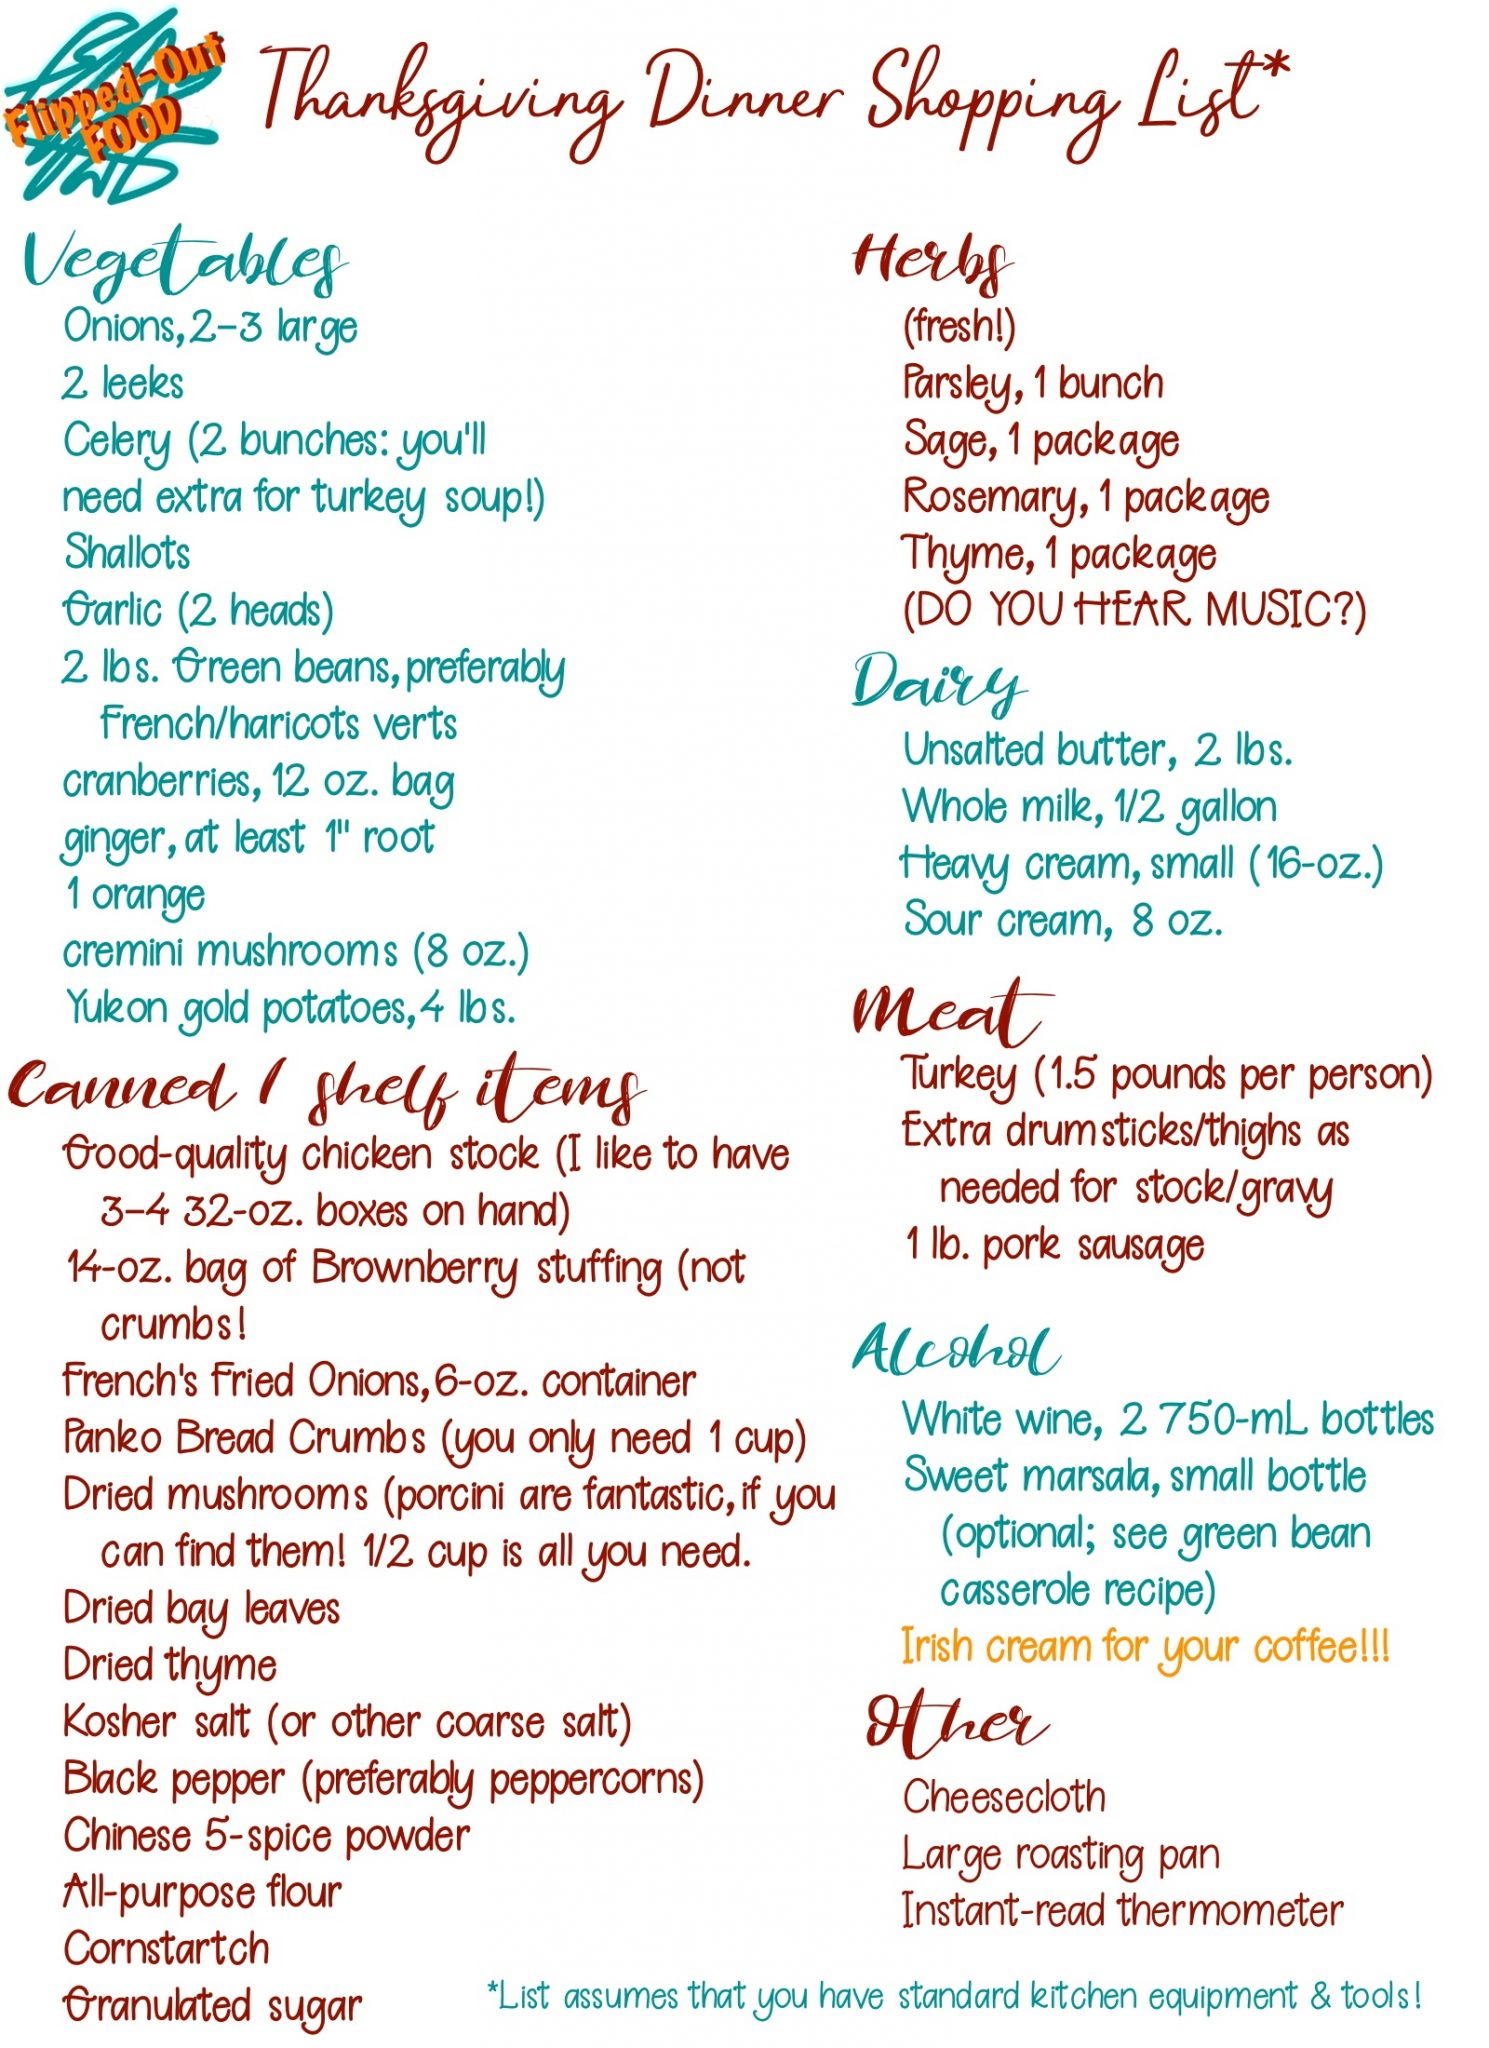 Thanksgiving Dinner meal plan shopping list